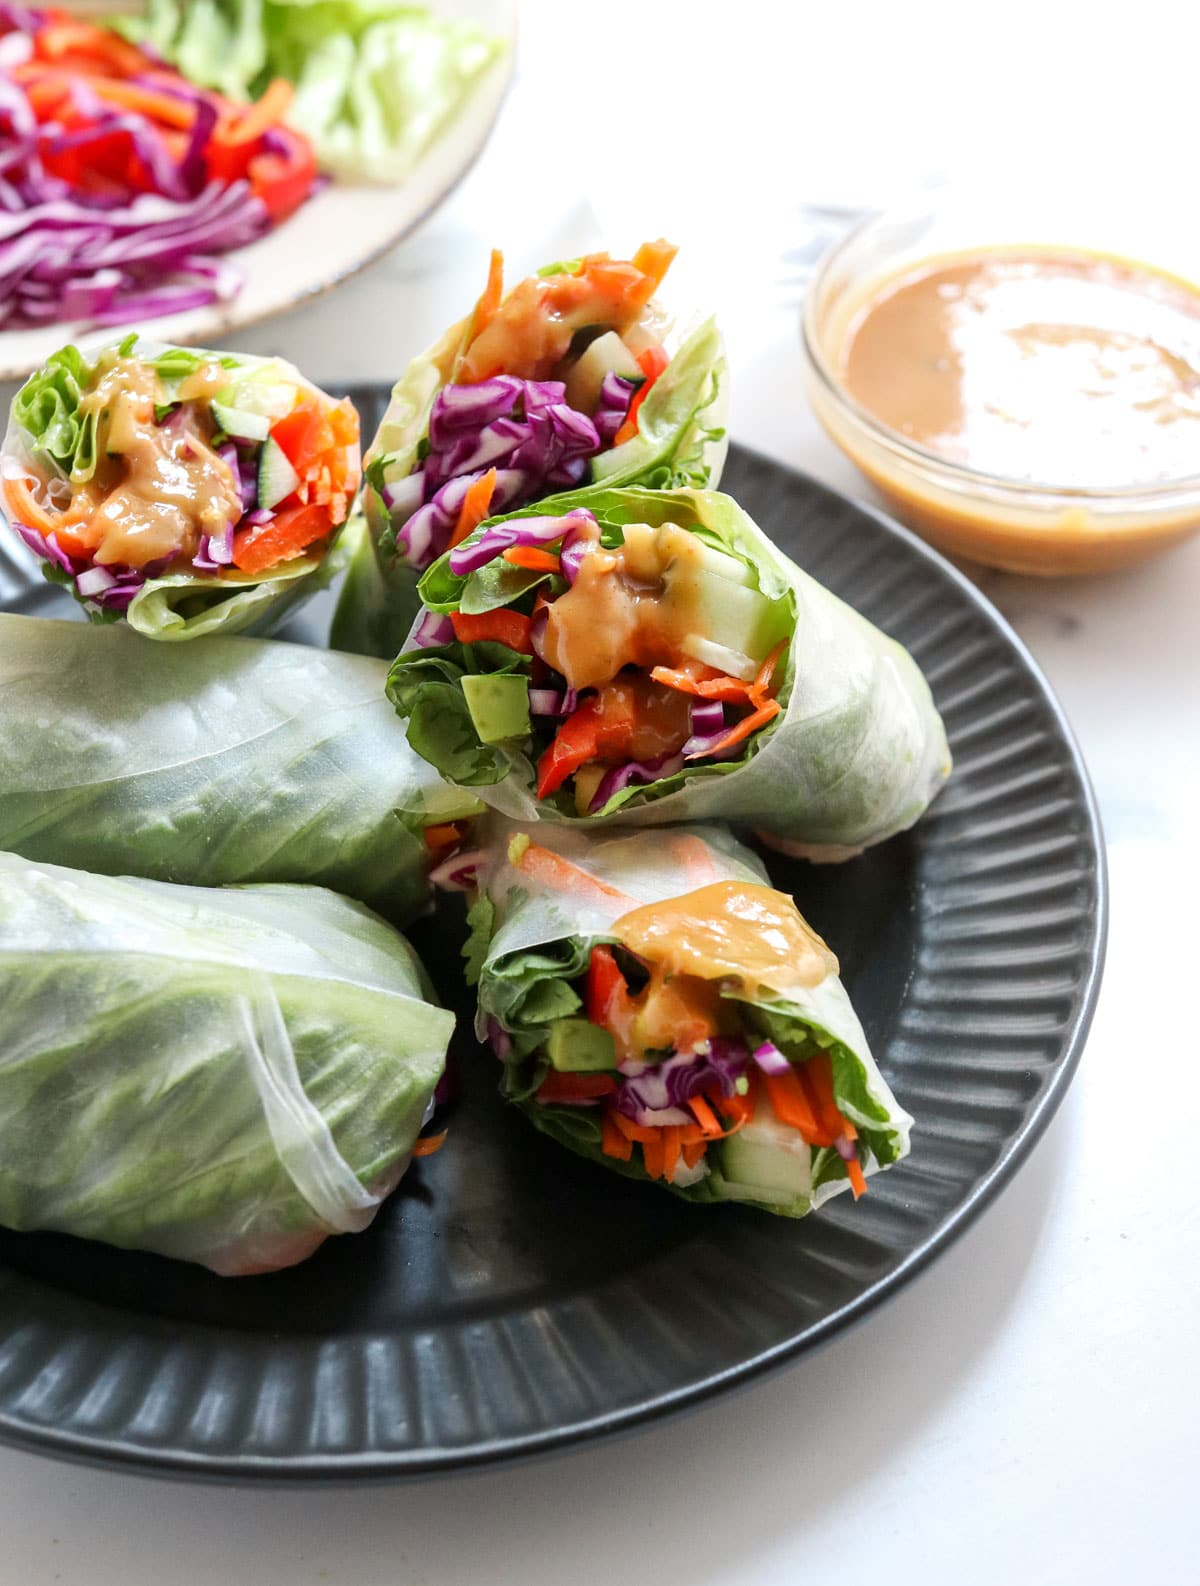 spring rolls with peanut sauce on top